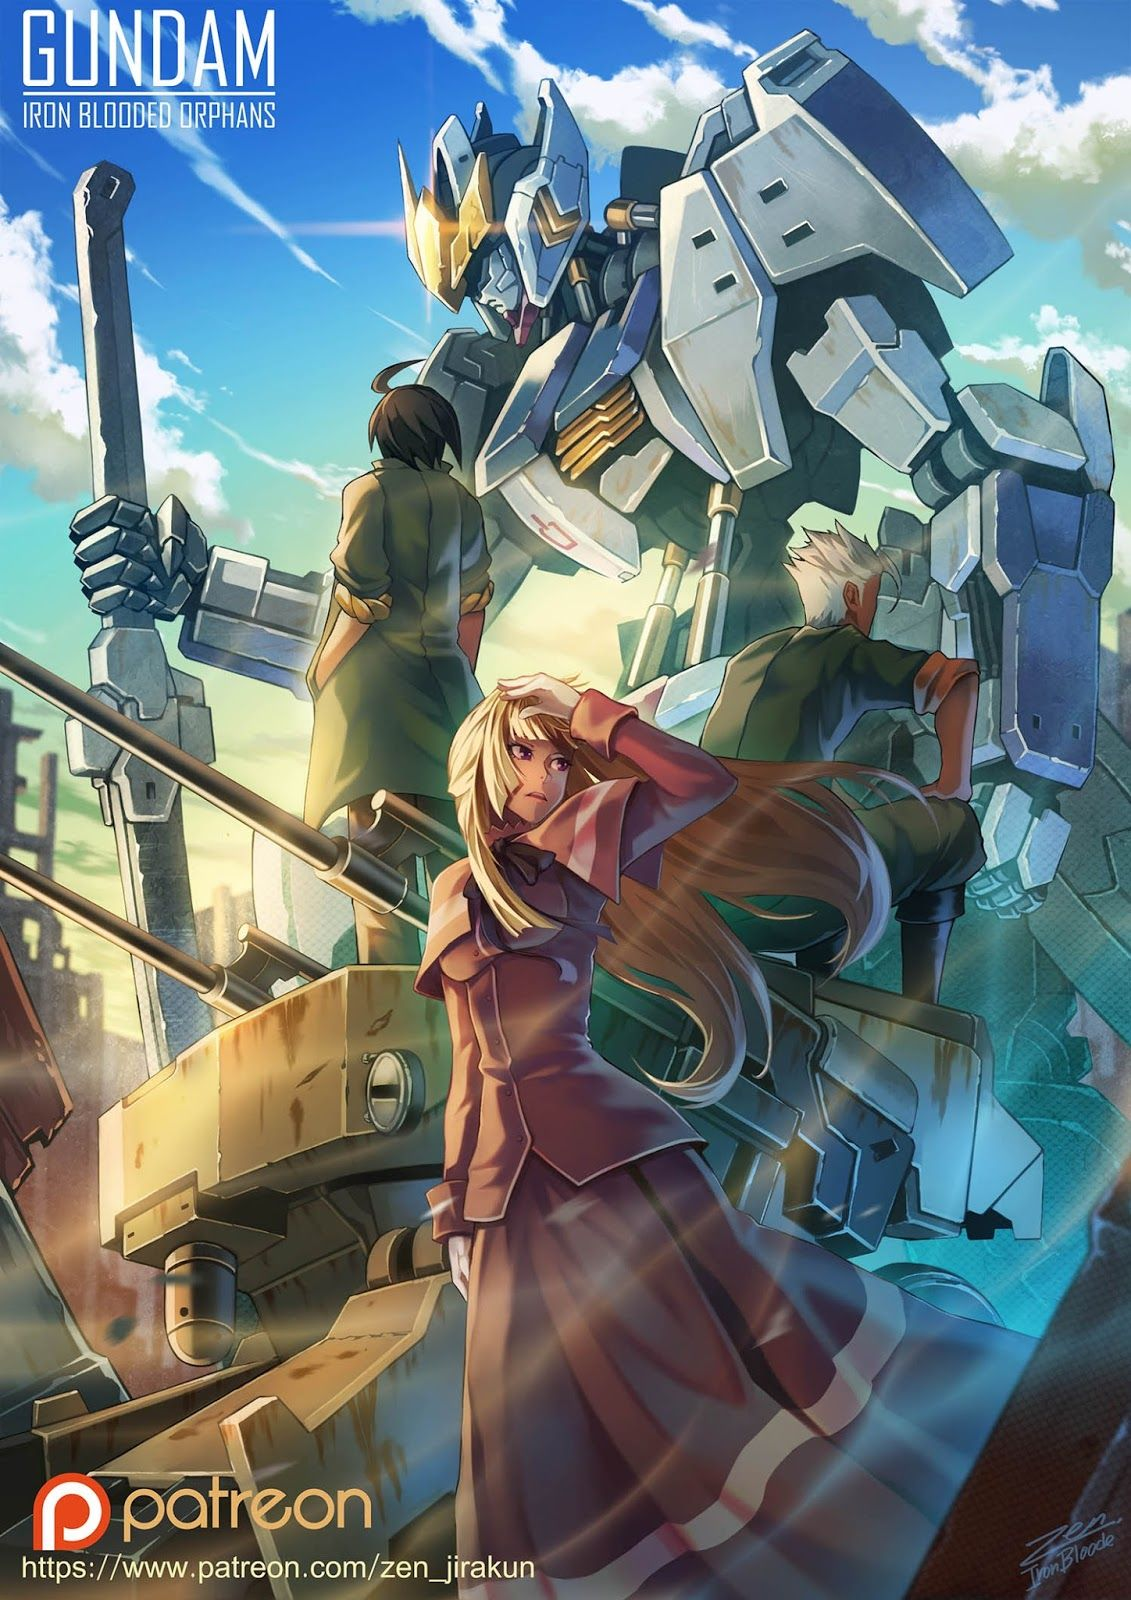 Gundam Digital Artwork Gundam Iron Blooded Orphans Updated 4 9